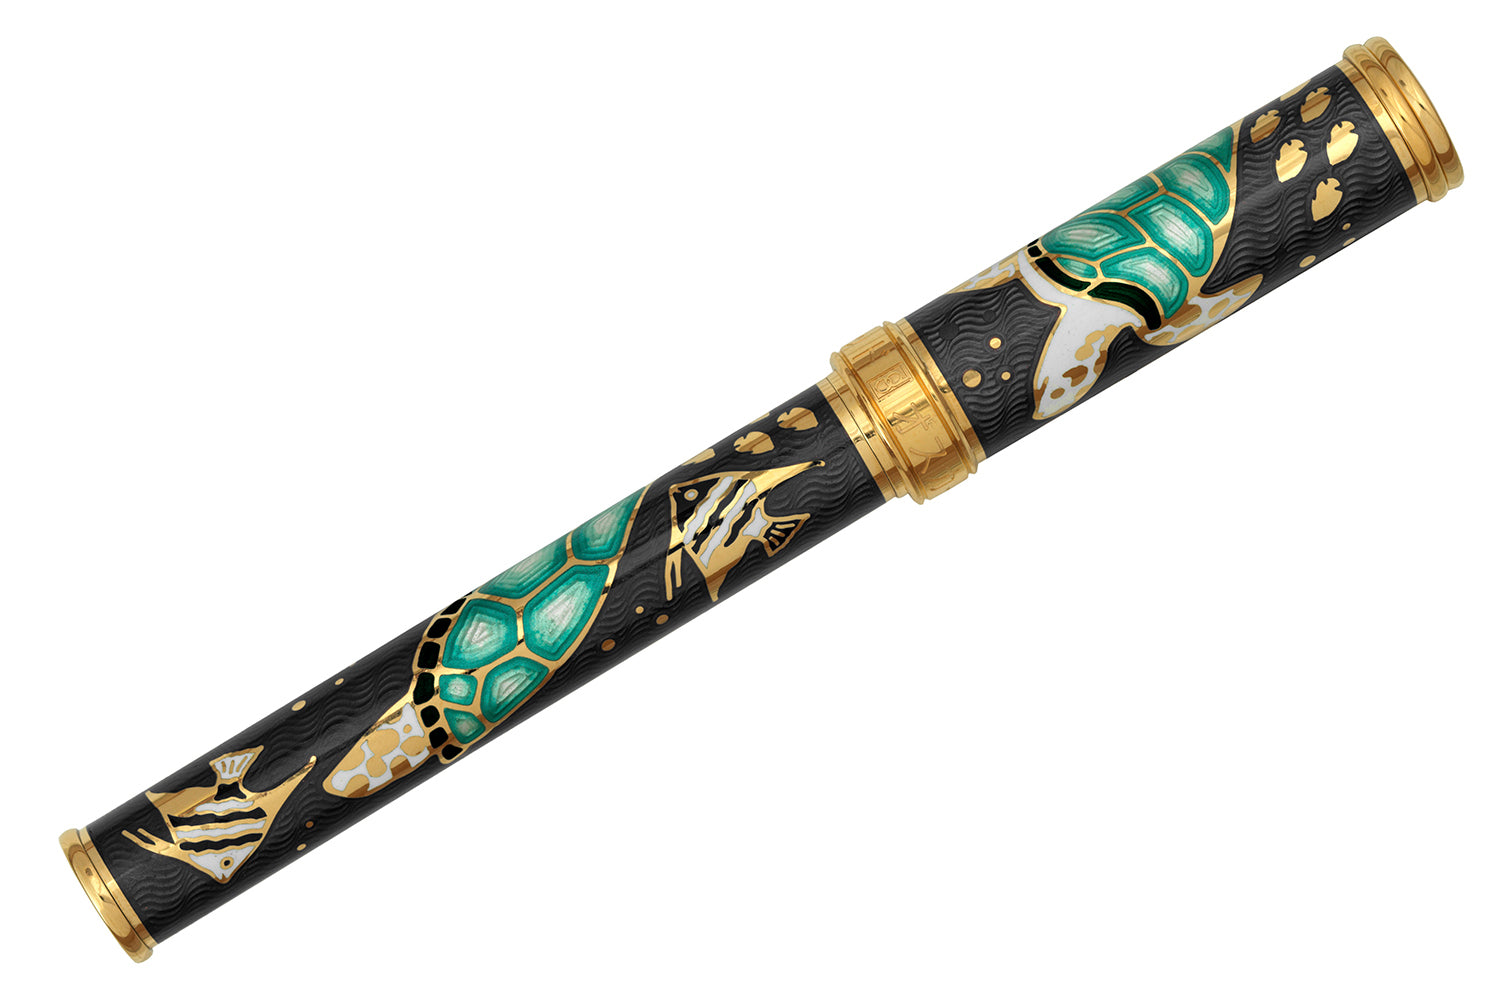 David Oscarson Sea Turtle Fountain Pen - Mossy Black/Teal/Gold